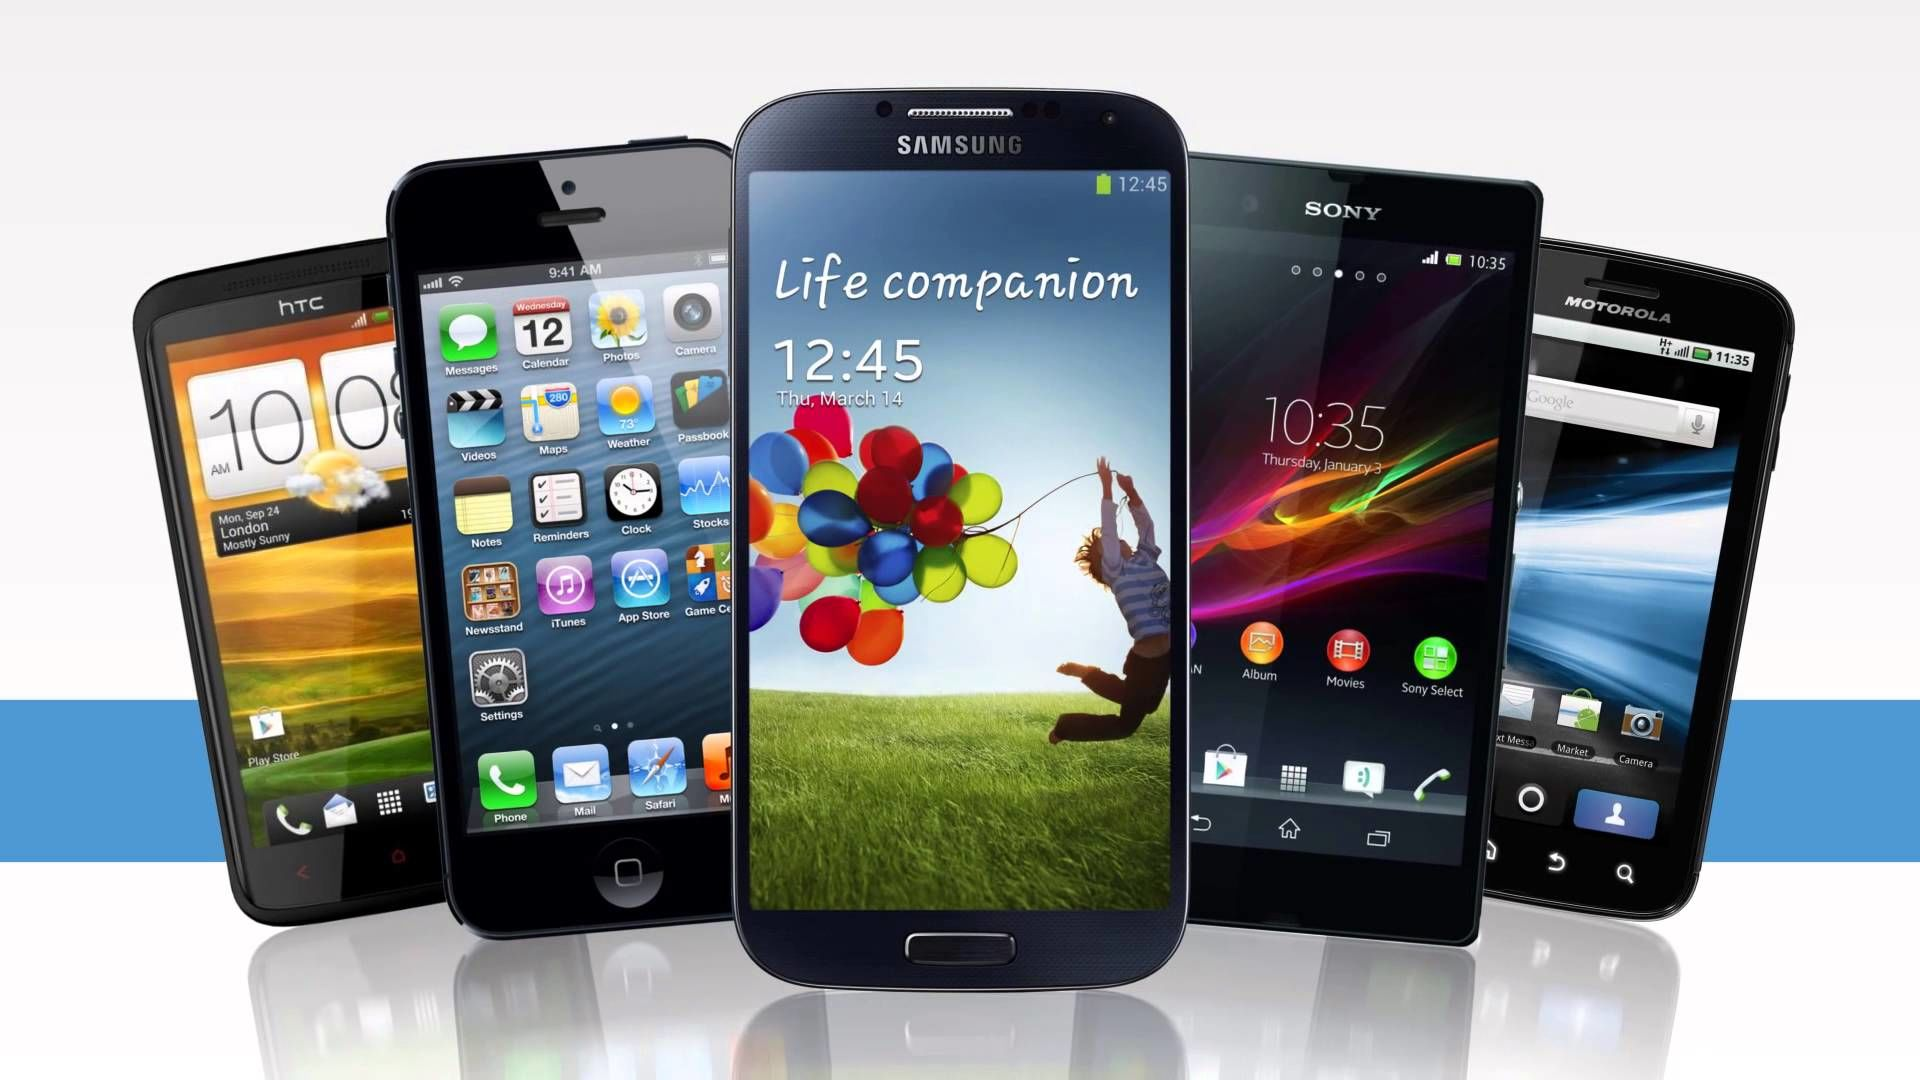 mobile phone boon or bare Mobile phone is a boon or bane is one of the common debate topics in schools and colleges here is a debate that discusses the same in detail if you are looking for some help on a debate or speech on the topic cellphone is a bane or boon, you can.